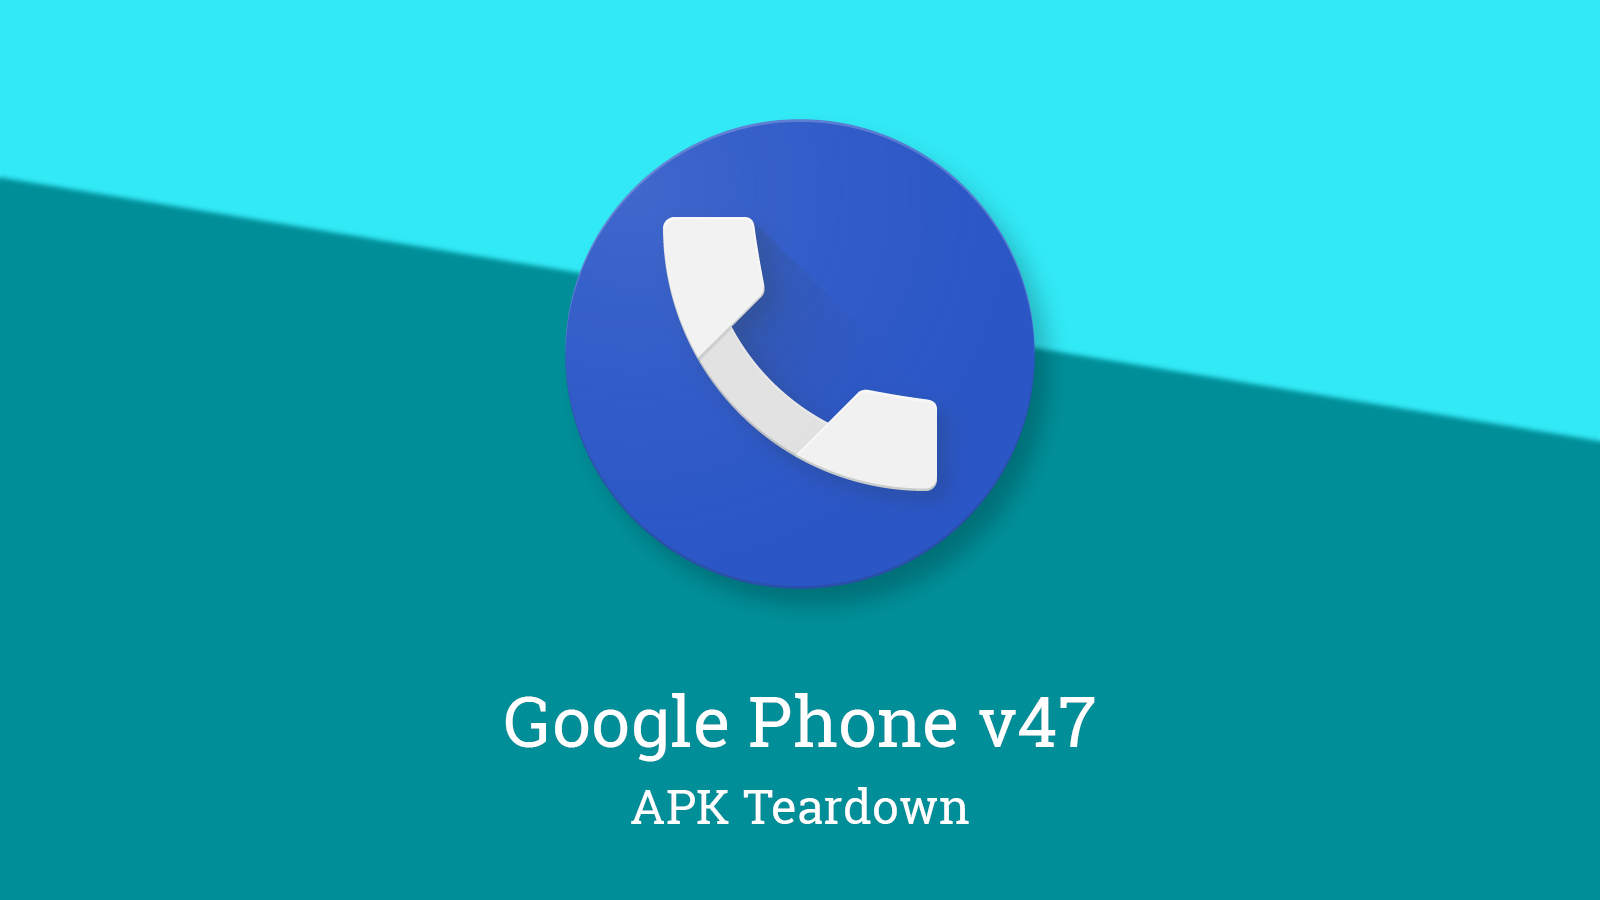 Google Phone v47 prepares to add Flip to Silence gesture [APK Teardown]